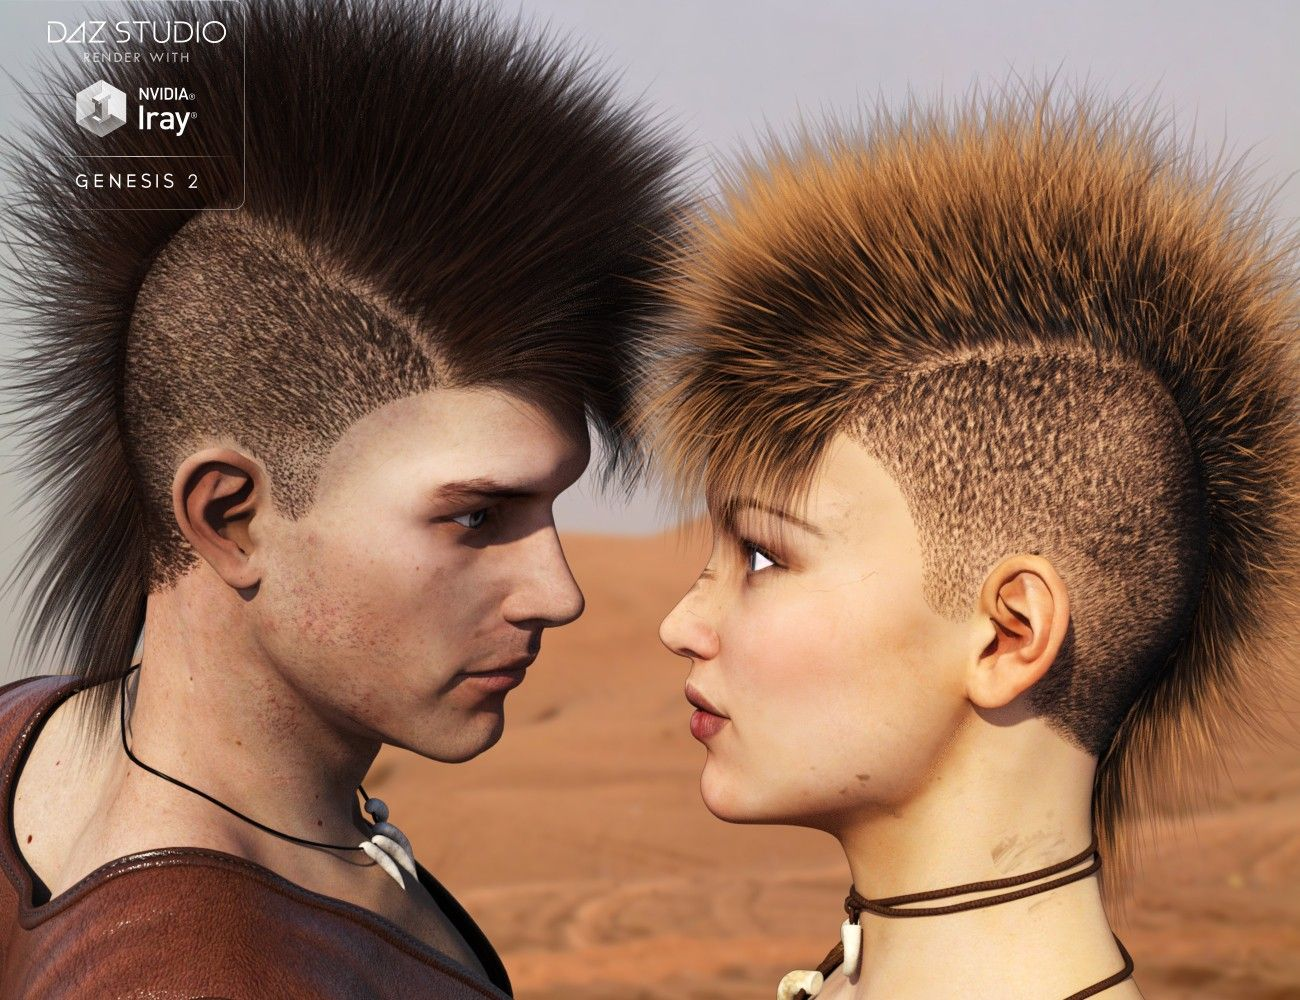 Mad Hair For Genesis 2 3d Models And 3d Software By Daz 3d Hair Genesis 2 Mohawk Styles